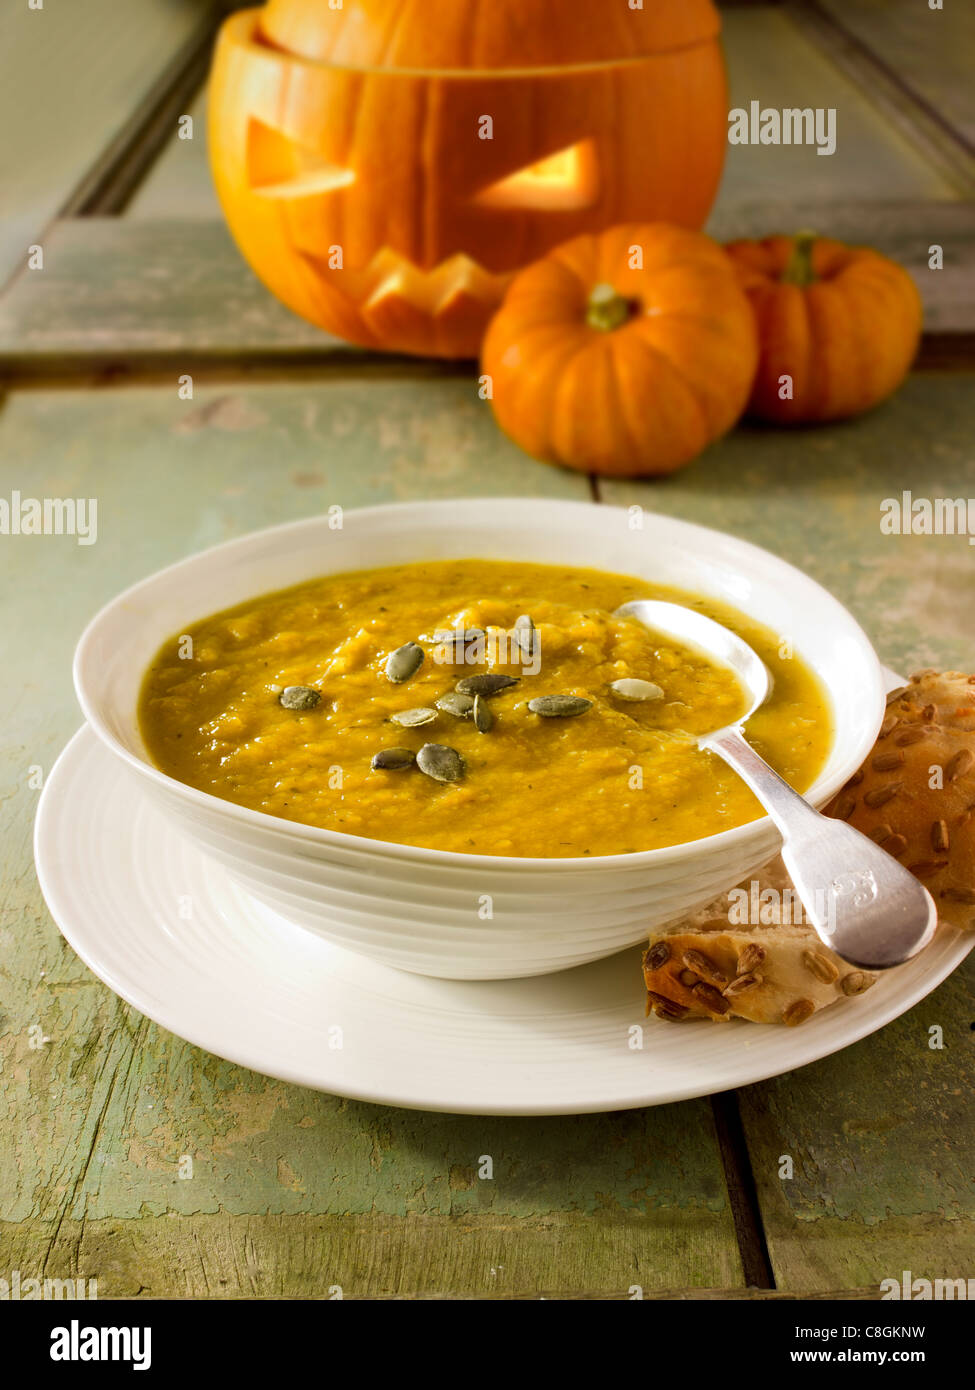 Pumpkin & Bacon Soup with a traditional Haloween pumpkin with a carved face Stock Photo